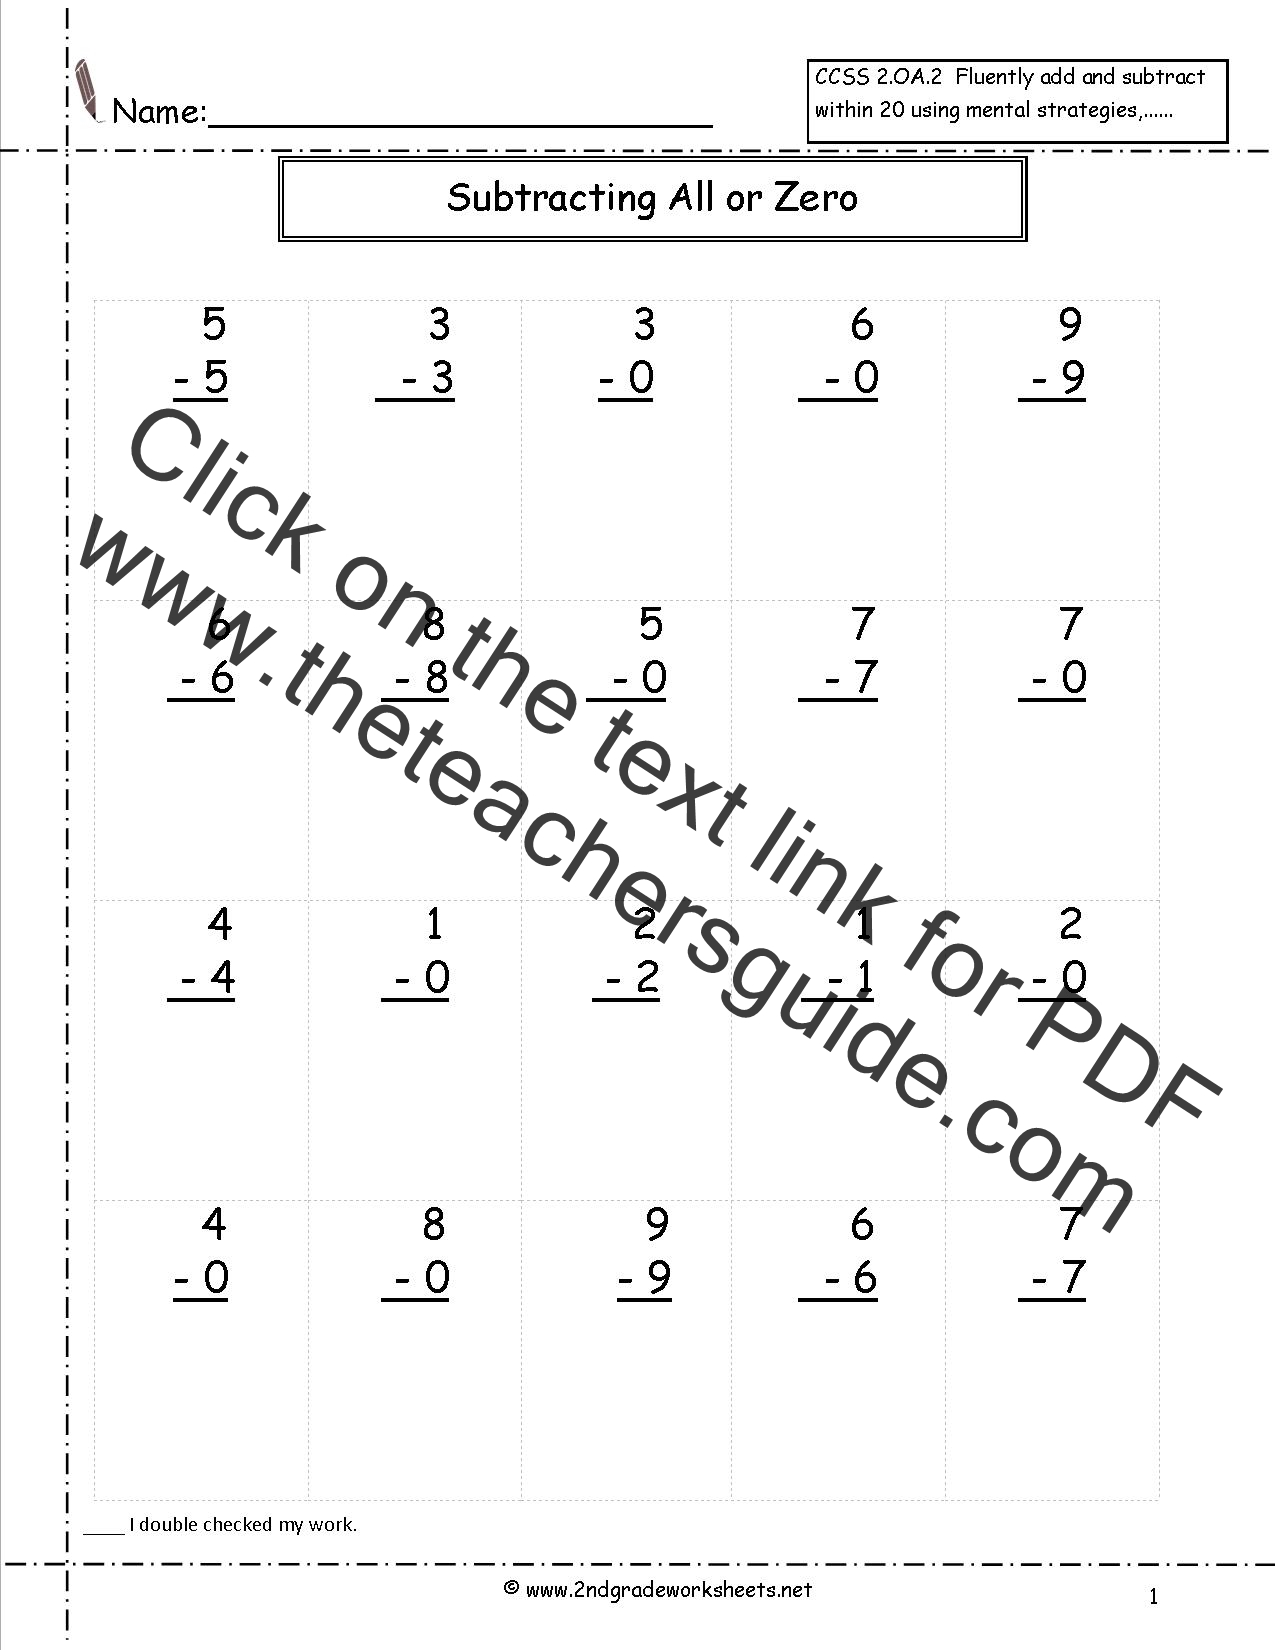 Single Digit Subtraction Fluency Worksheets – Adding and Subtracting to 20 Worksheets